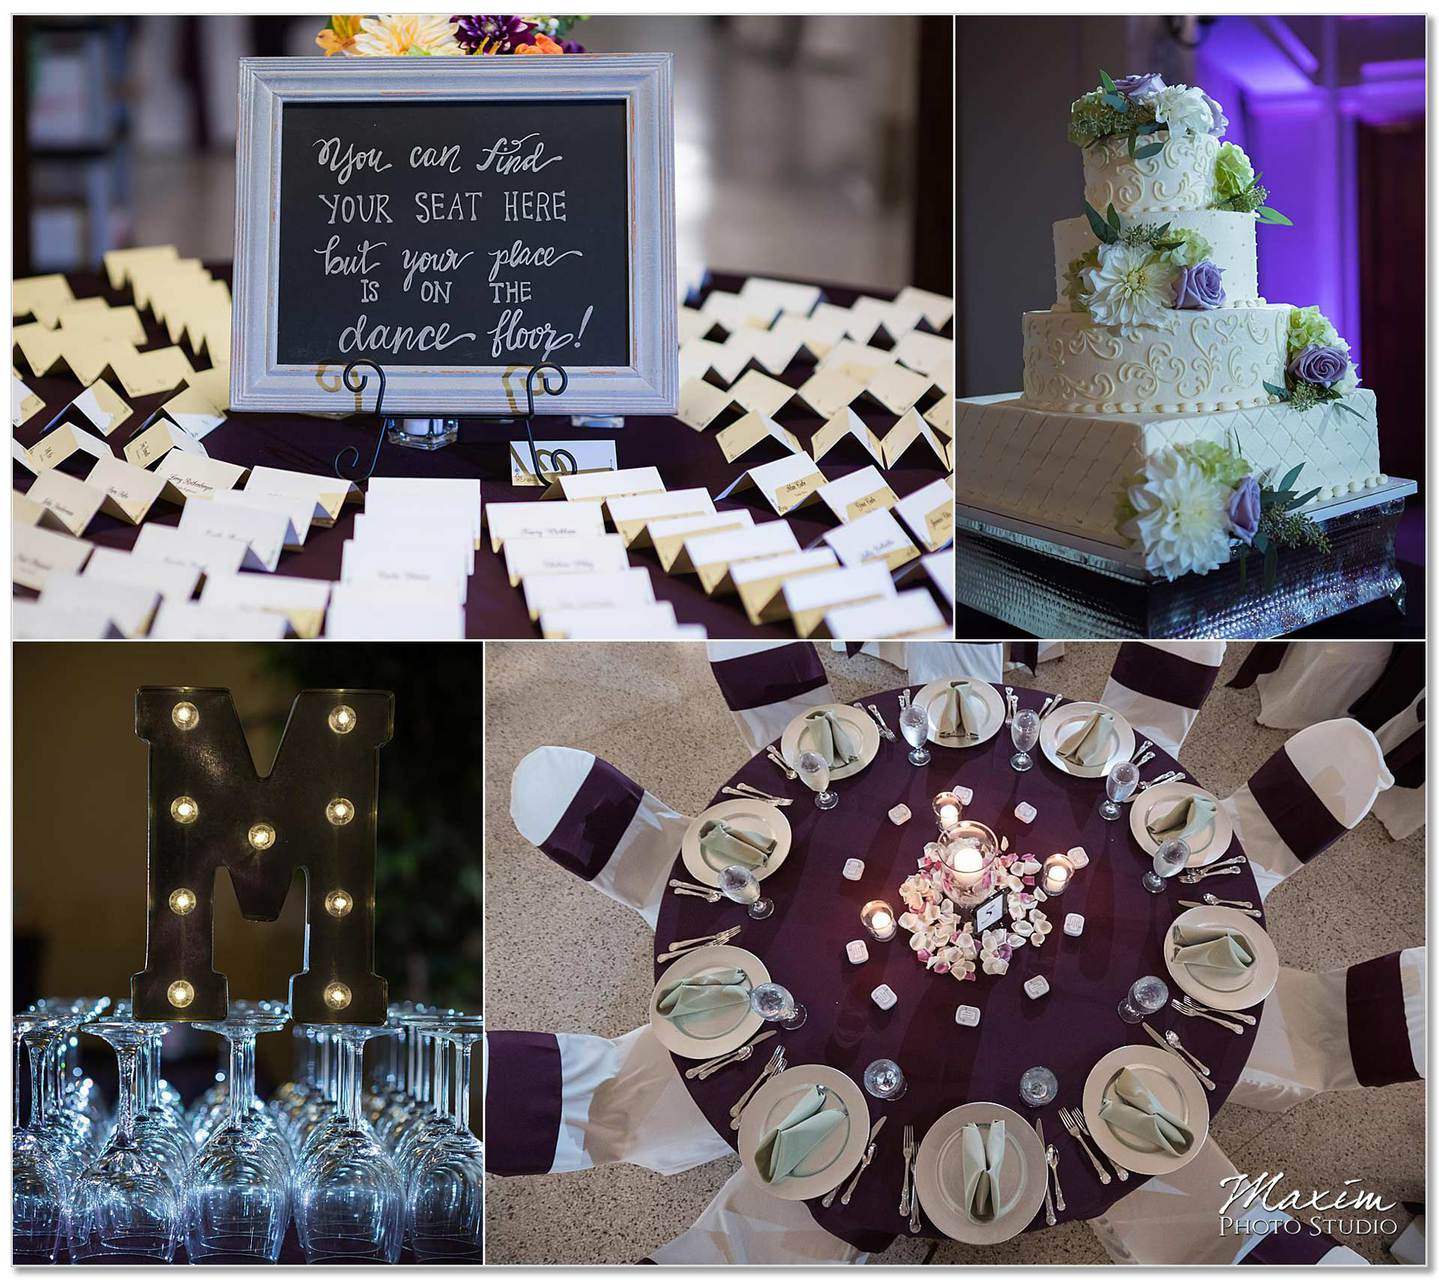 The Cakery Masonic Center Dayton Wedding reception Cake